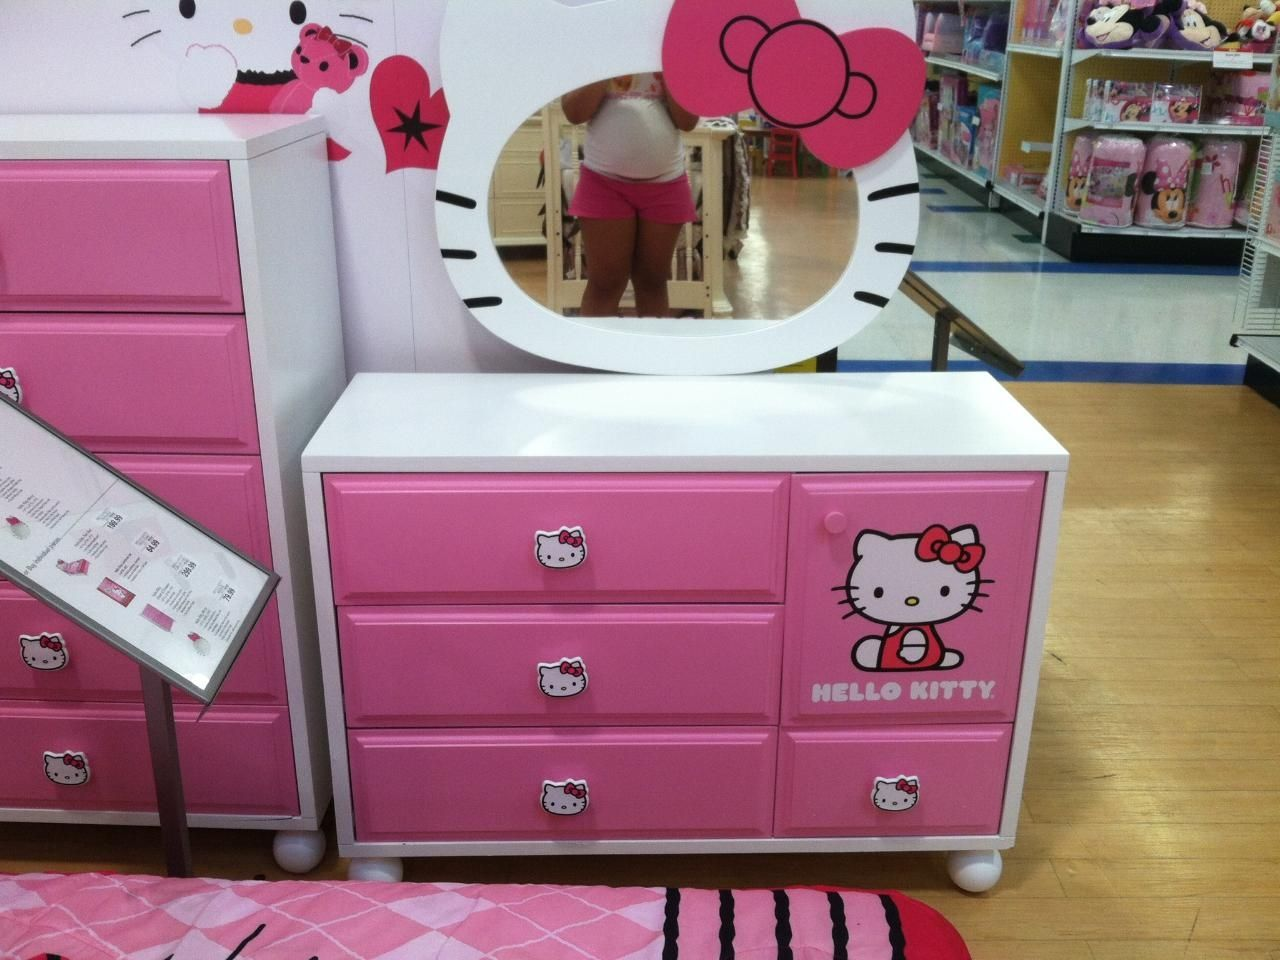 hello kitty kids furniture. hello kitty dresser and like omg get some yourself pawtastic adorable cat apparel kids furniture